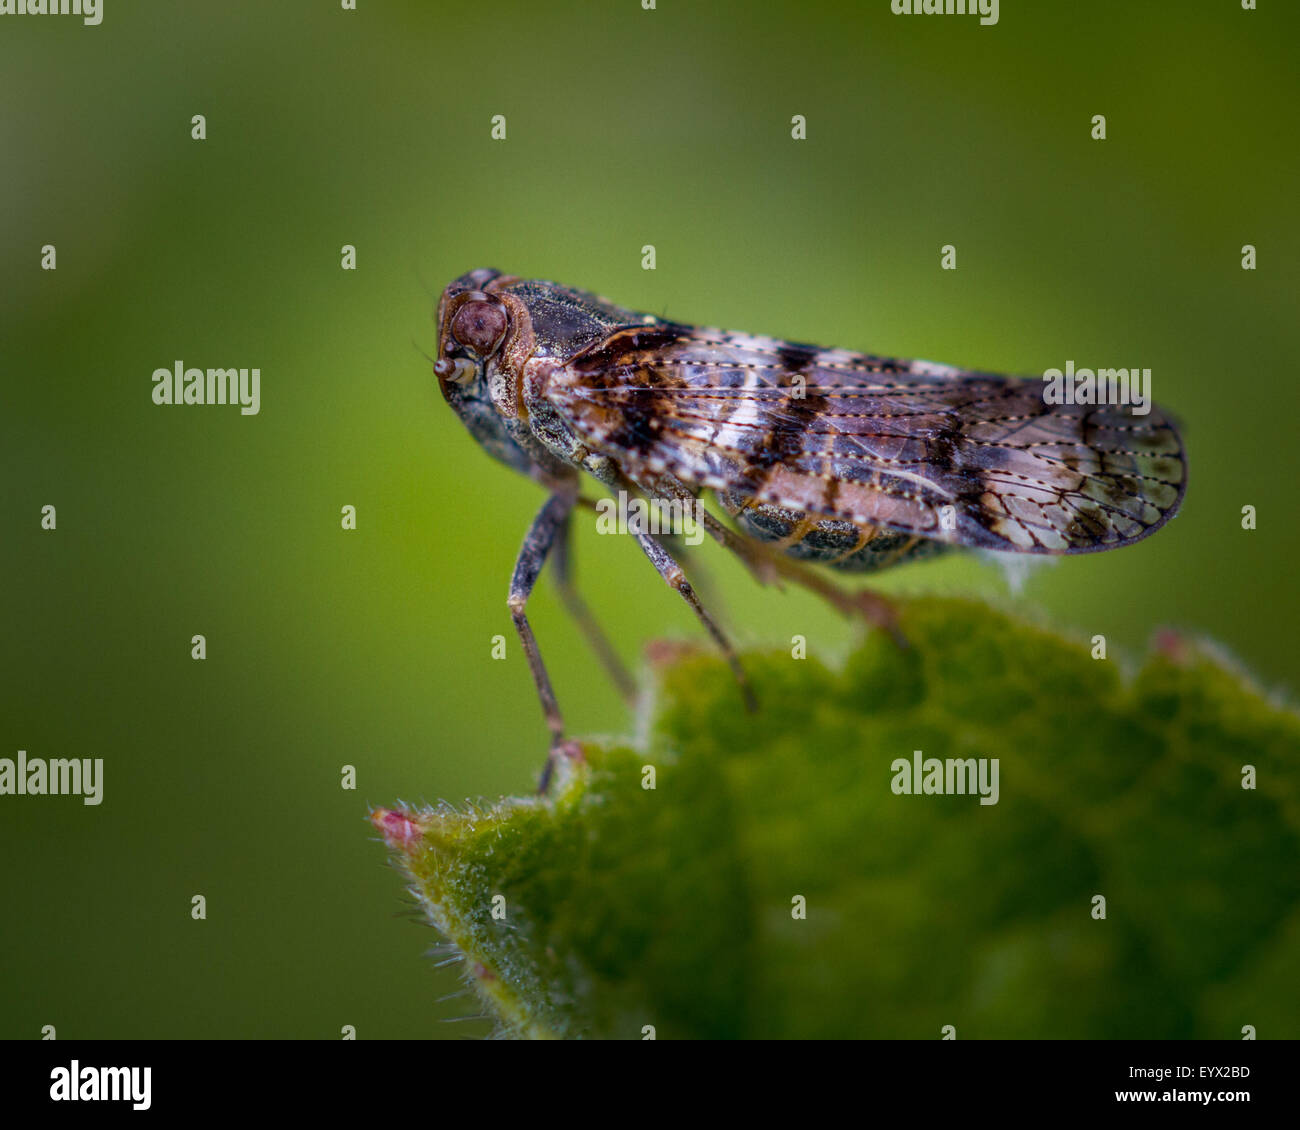 Cixius nervosus from the family Cixiidae or lacehoppers (c.6mm long) - Stock Image